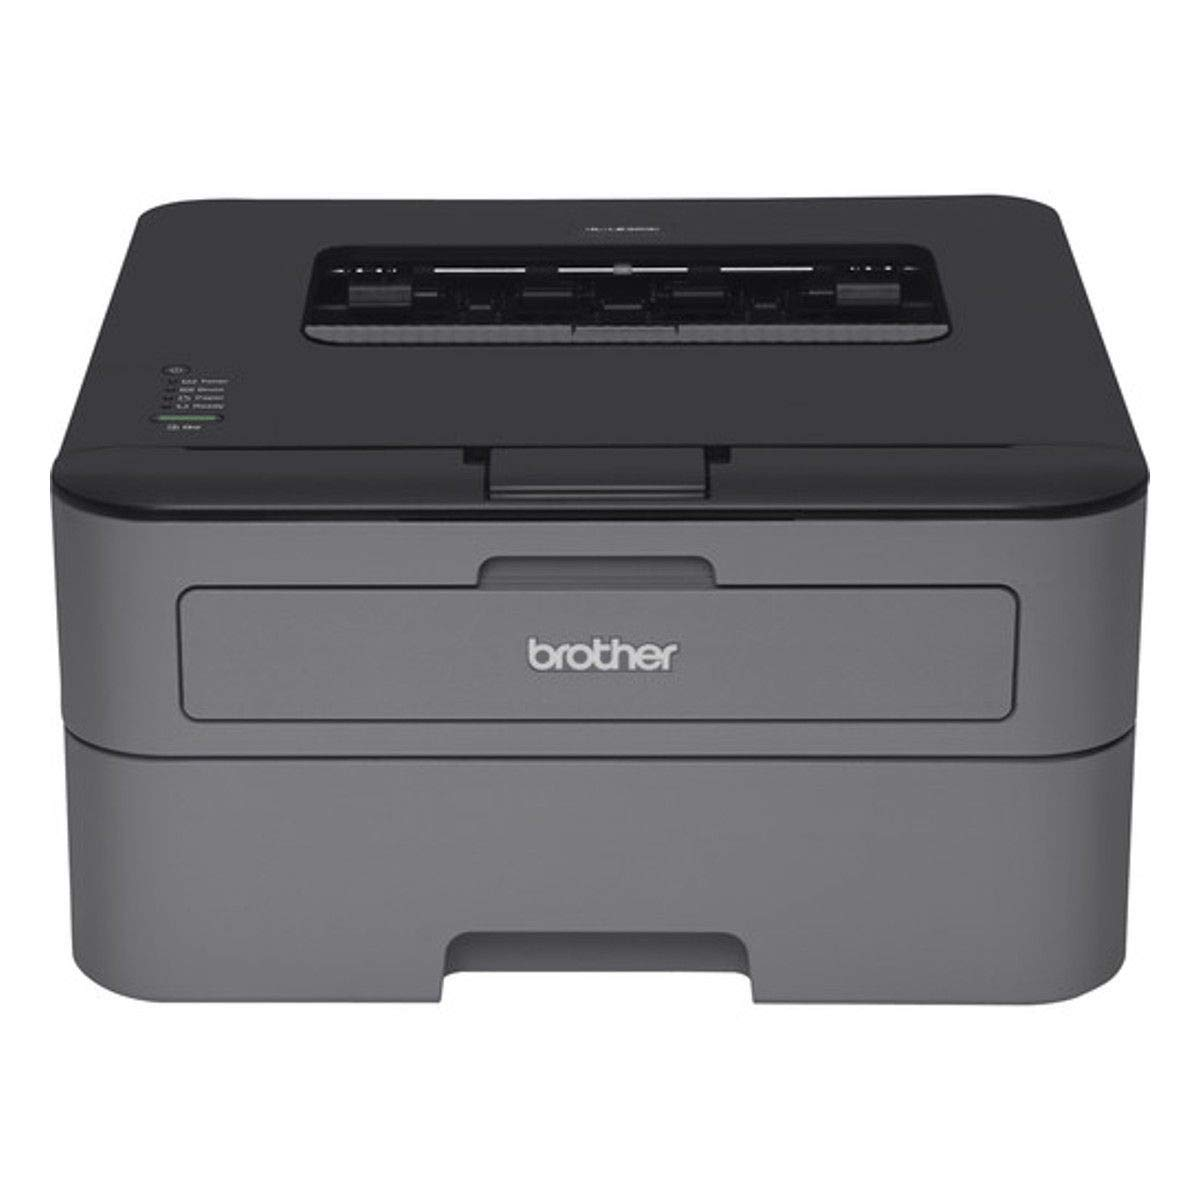 Brother HL L2321D Single Function Monochrome Laser Printer with Auto Duplex Printing Printers